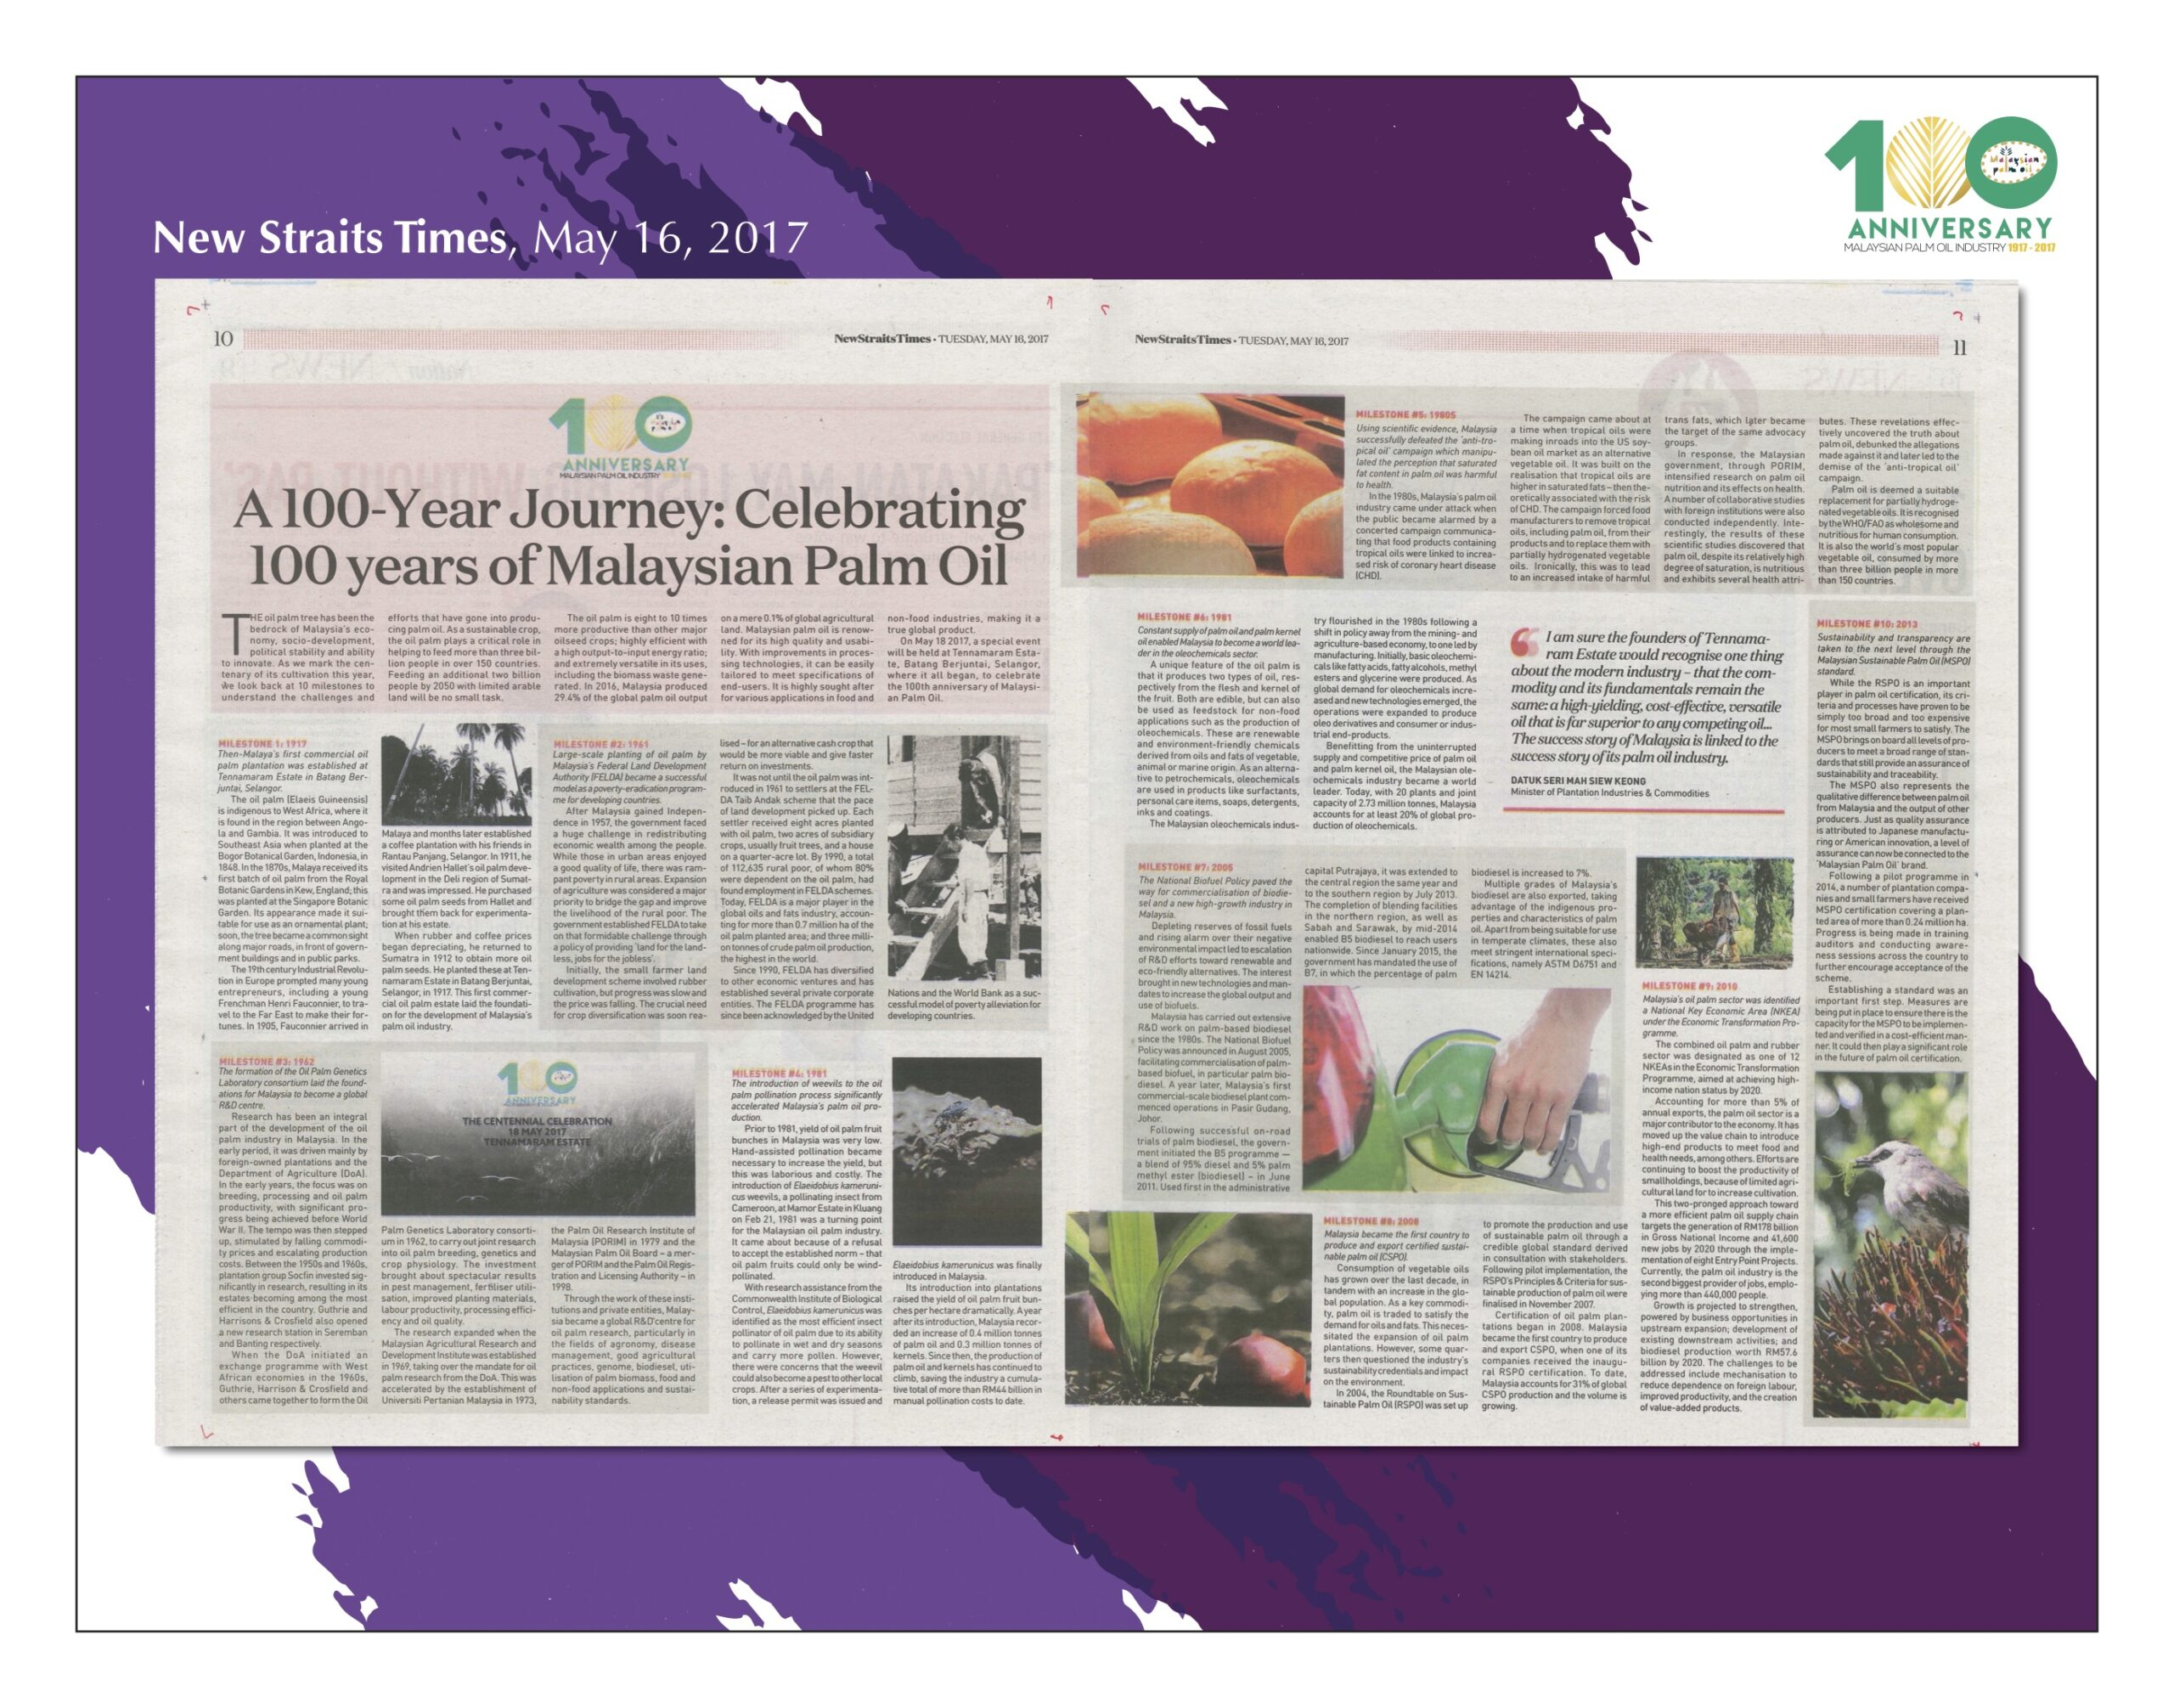 landscape nst article